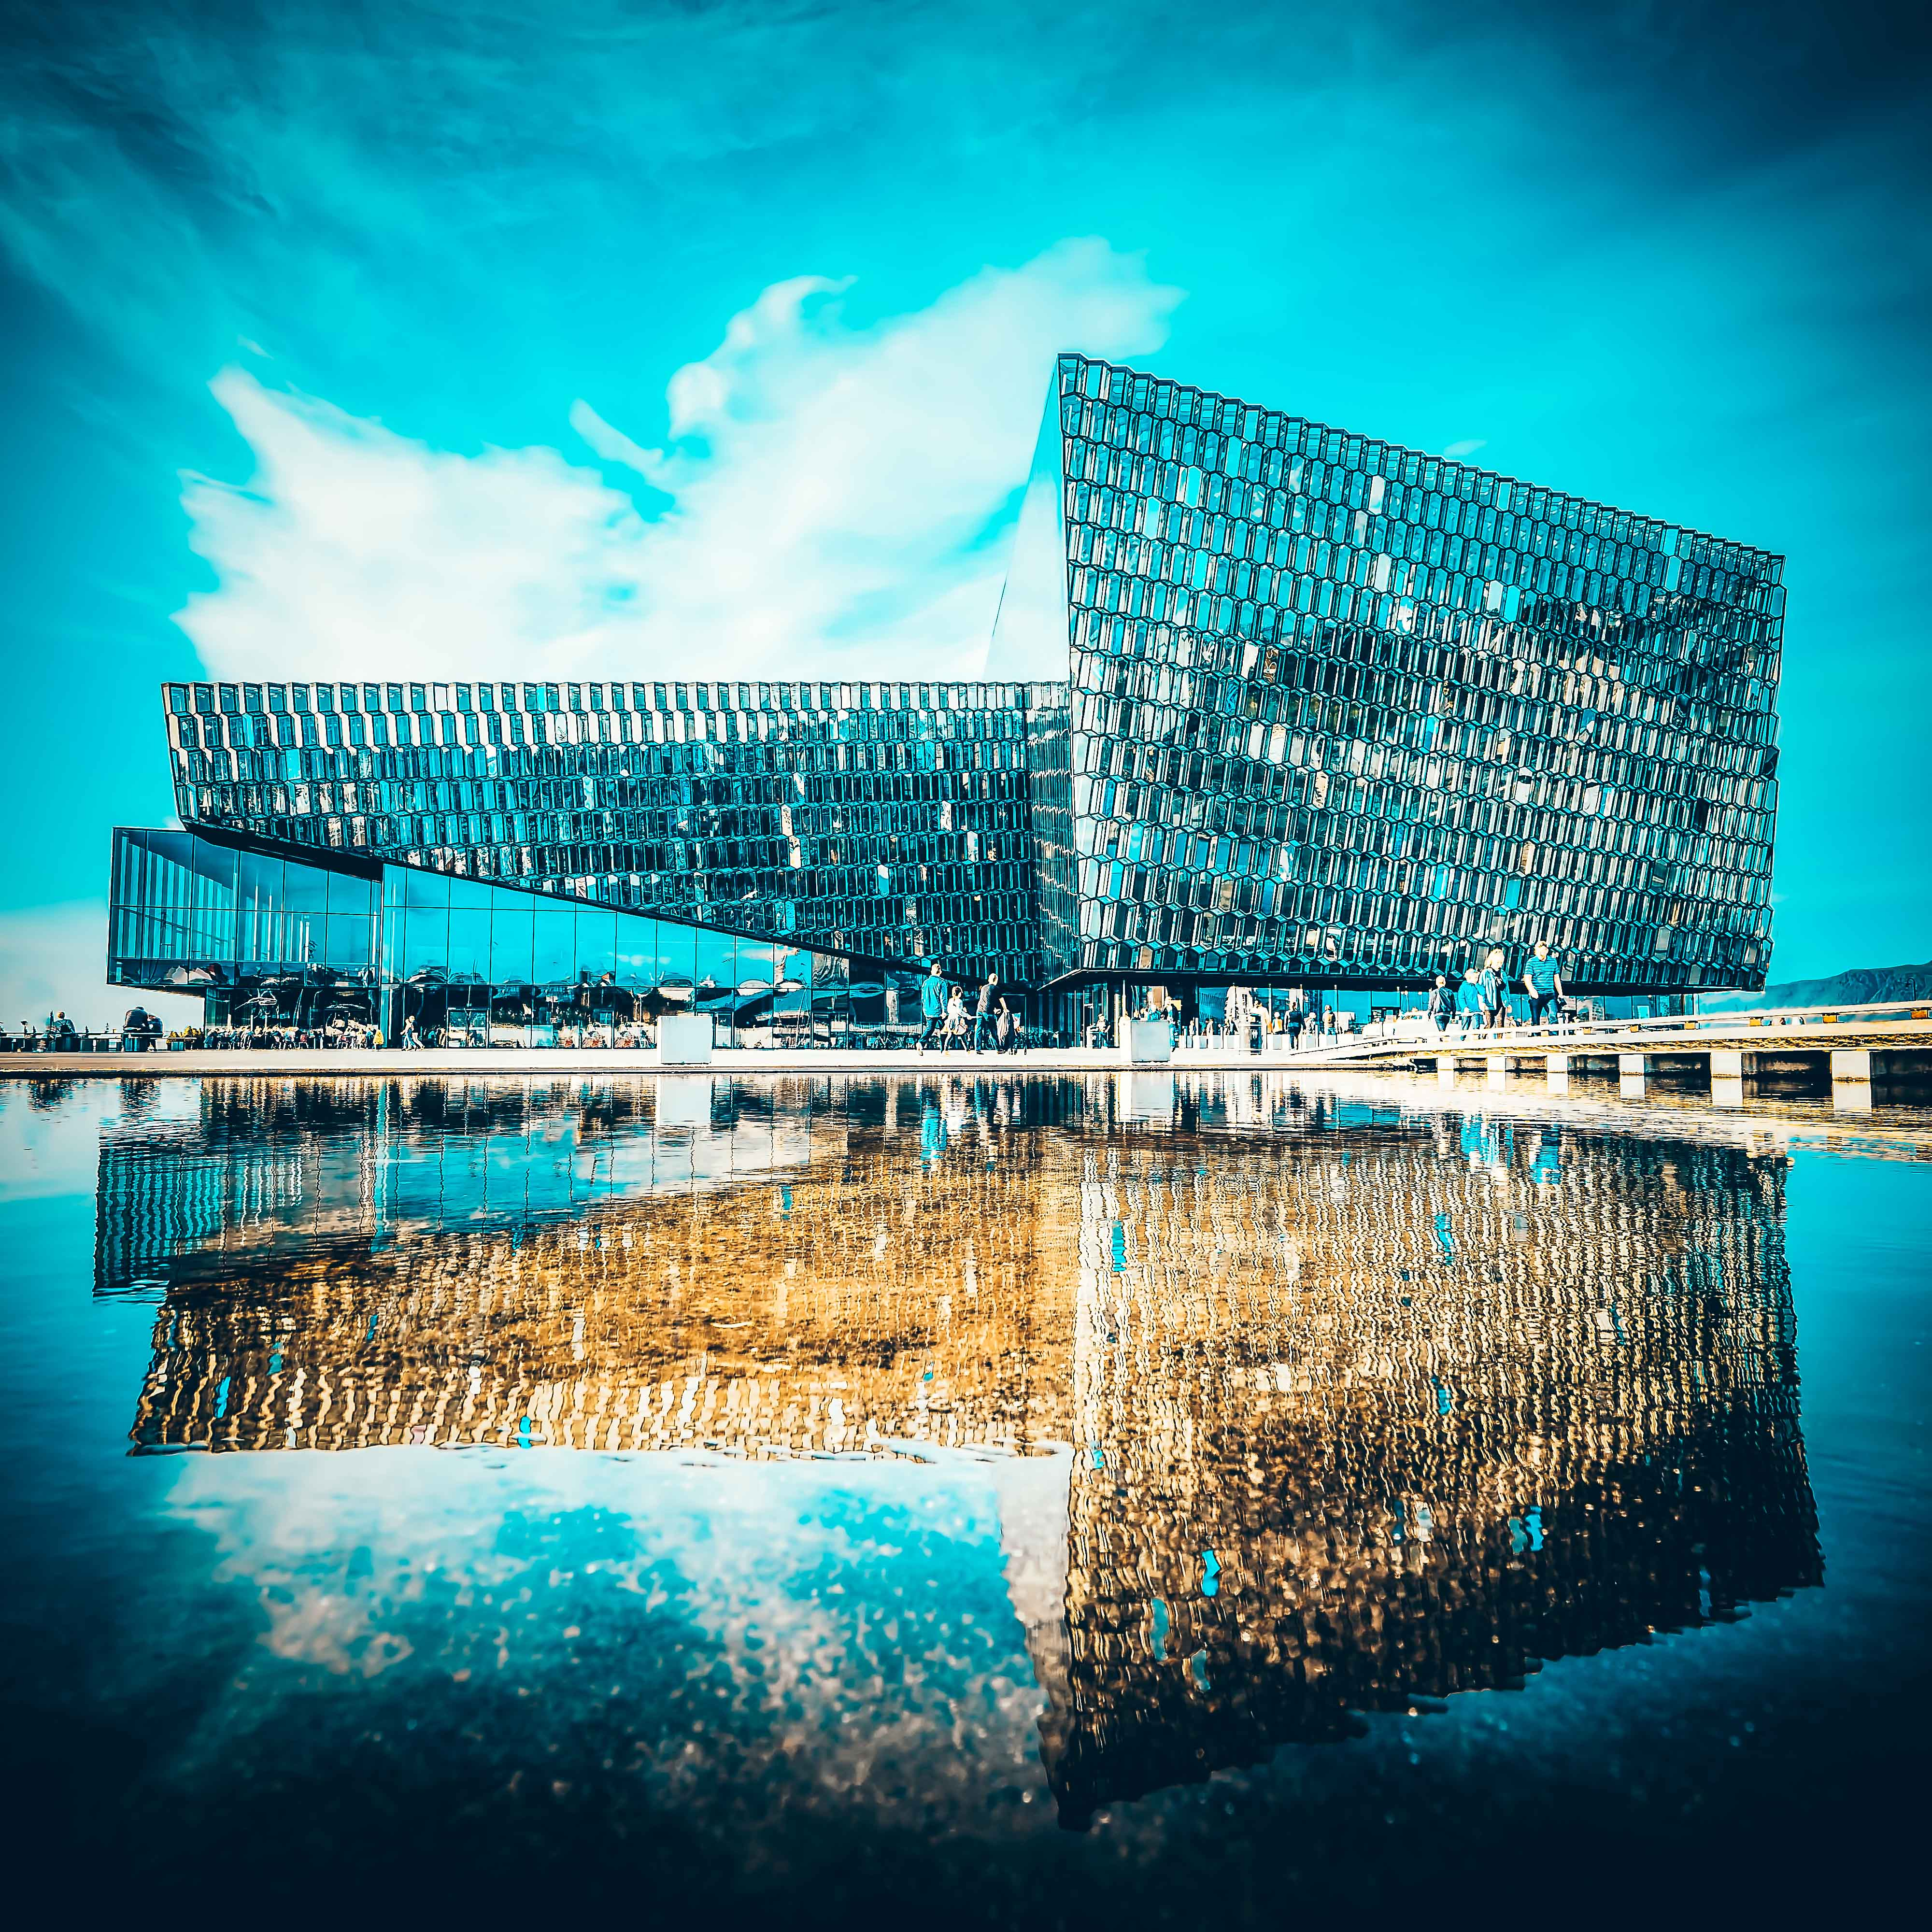 Reyk Harpa (1 of 1)